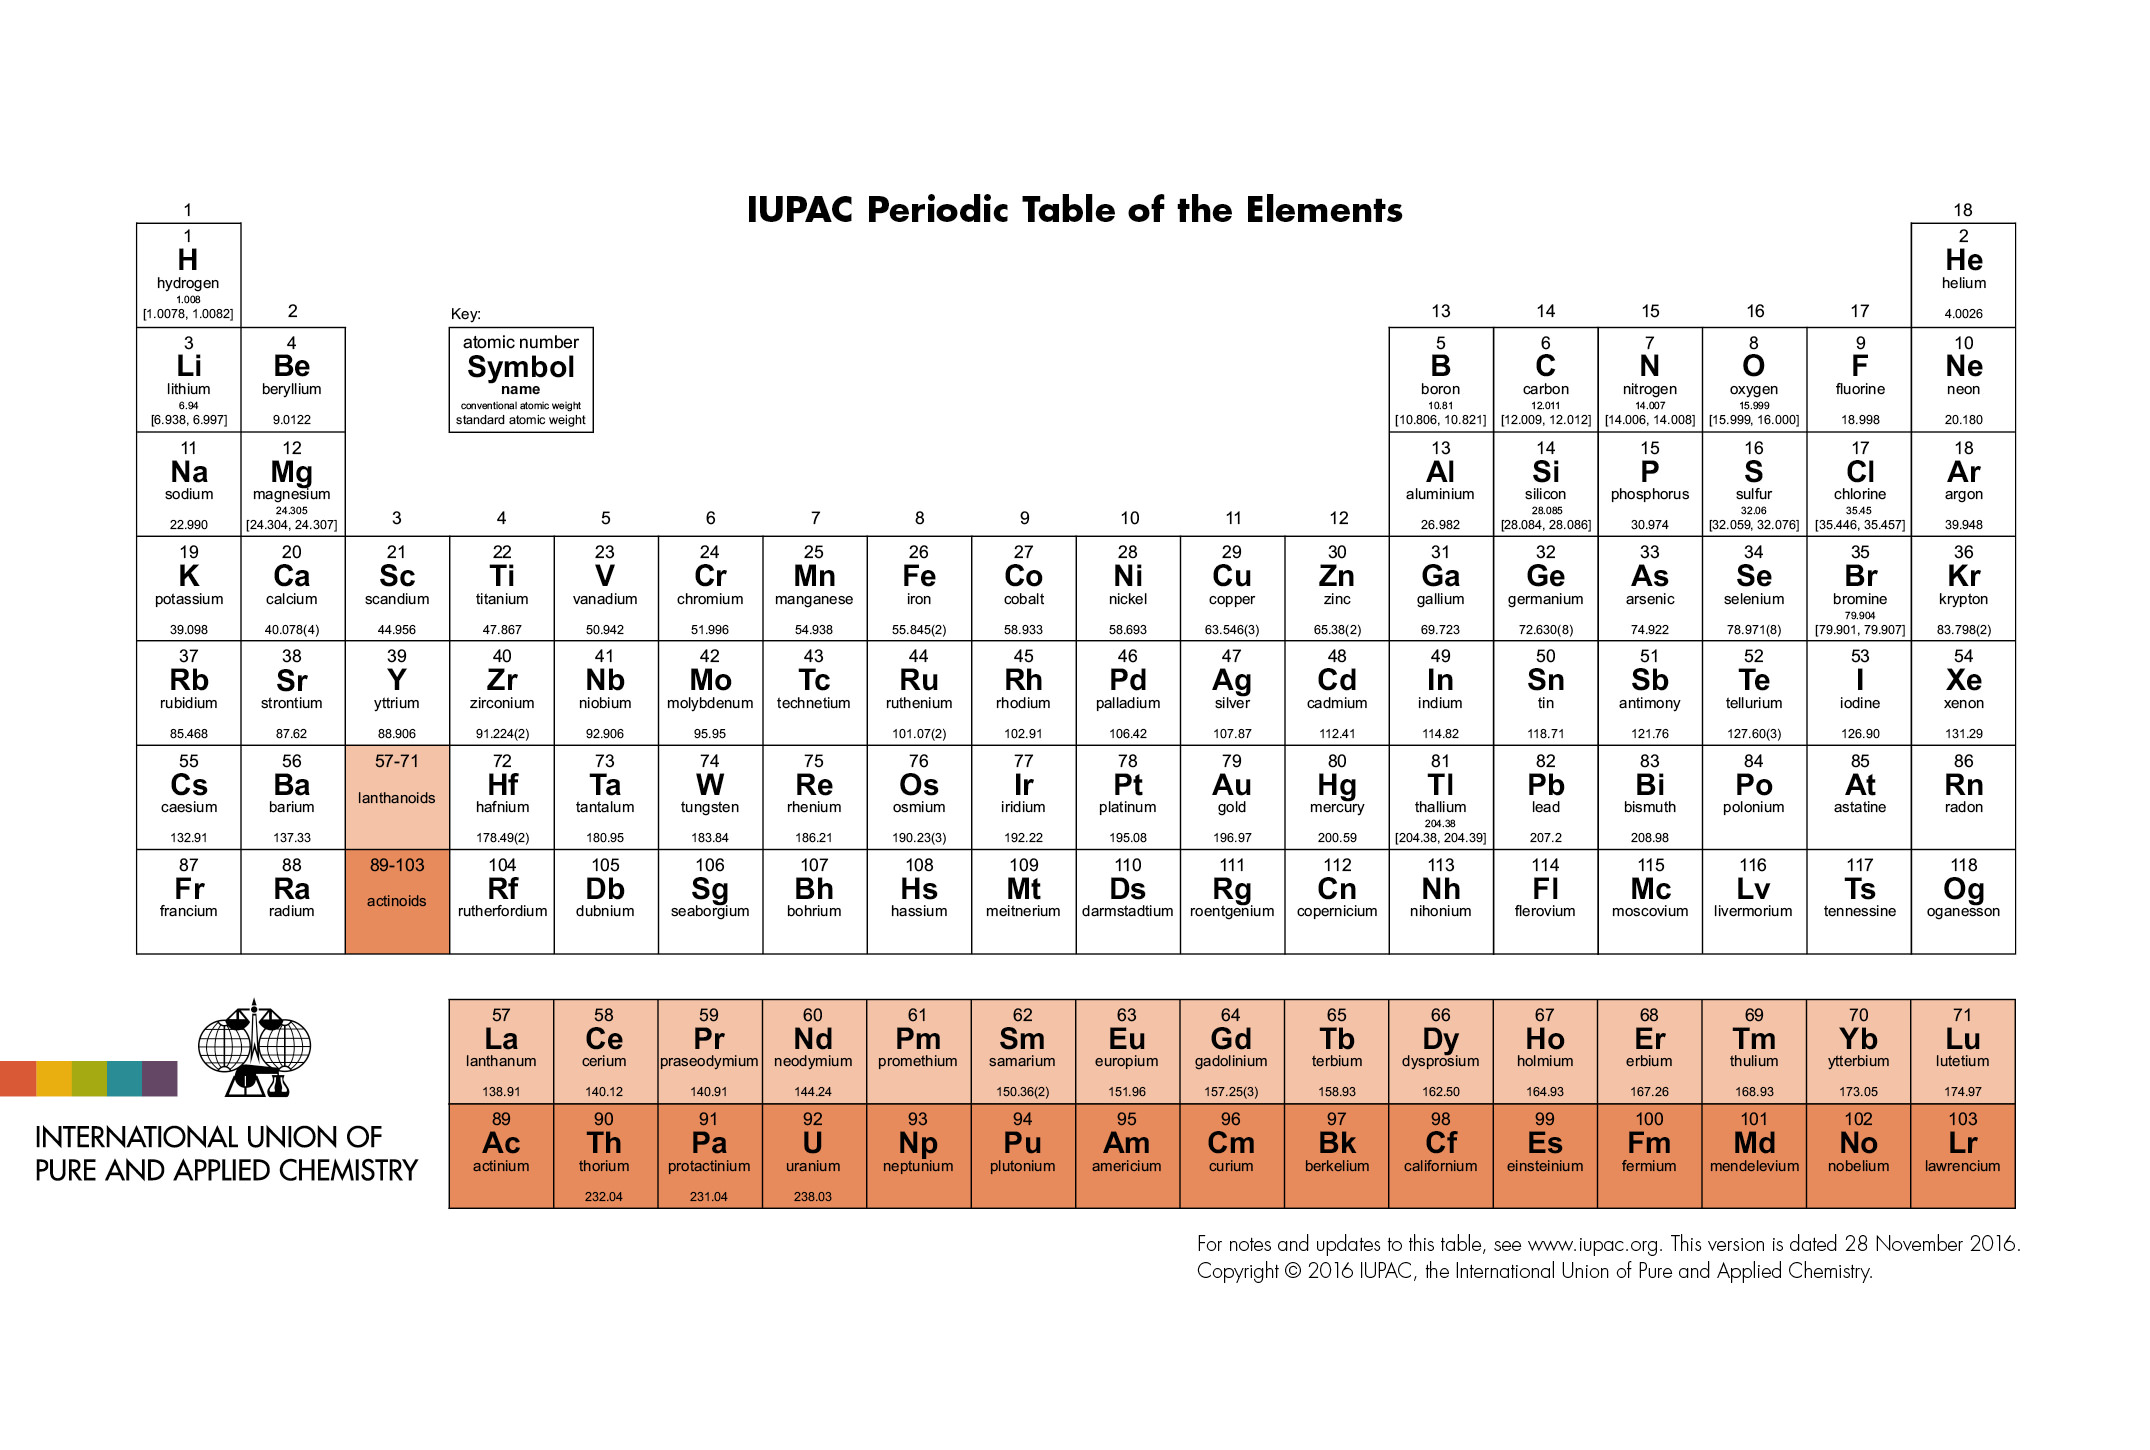 Iupac international union of pure and applied chemistry periodic periodic table of elements gamestrikefo Images